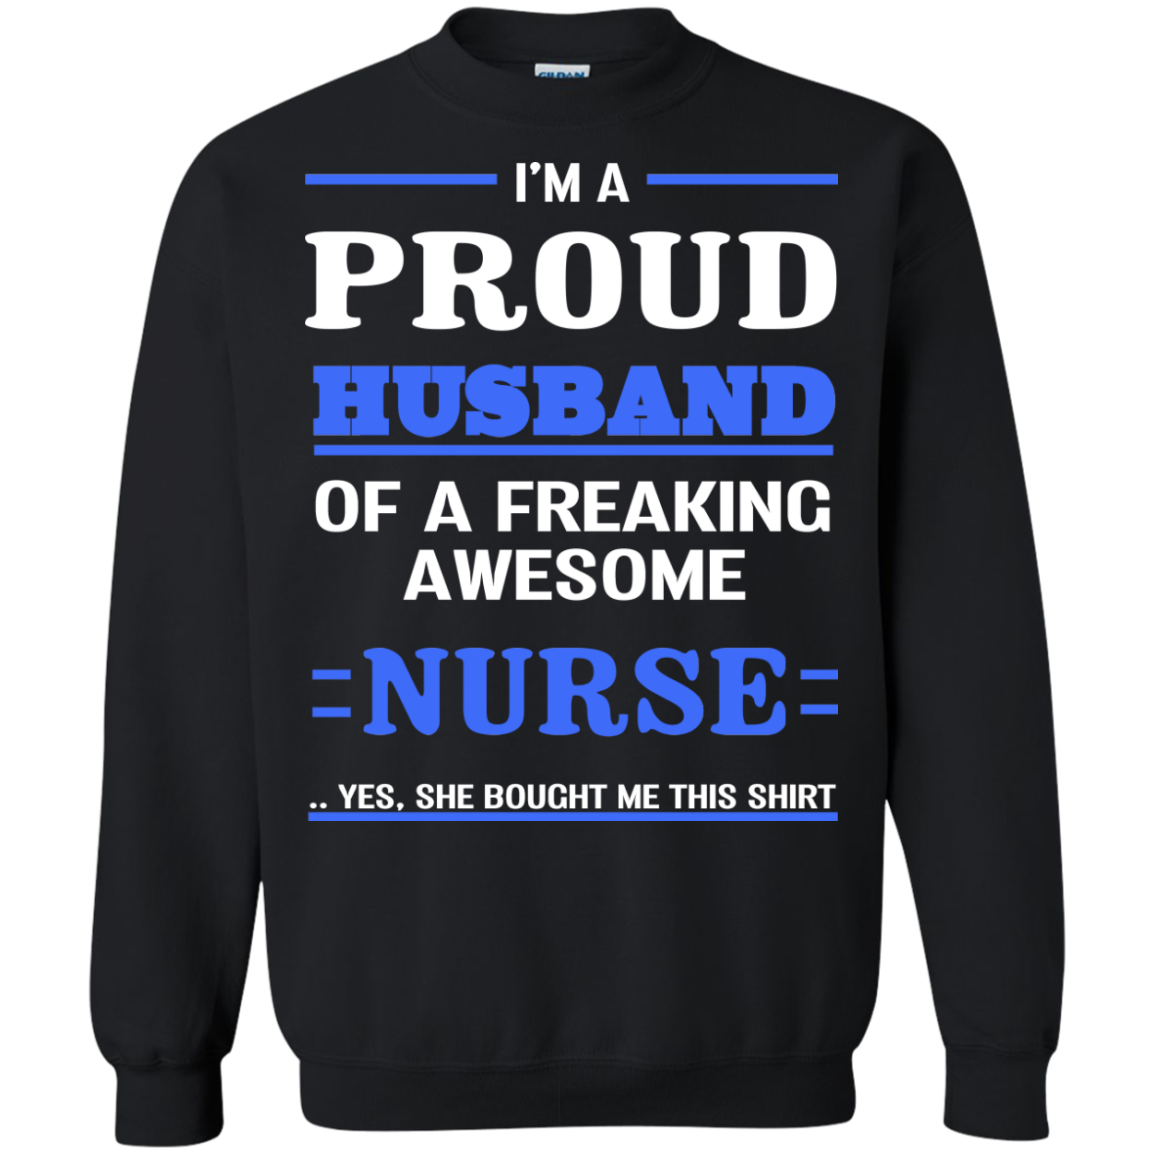 I'm A Proud Husband of a freaking awesome NURSE..Yes, She Bought Me This Shirt - The Sun Cat